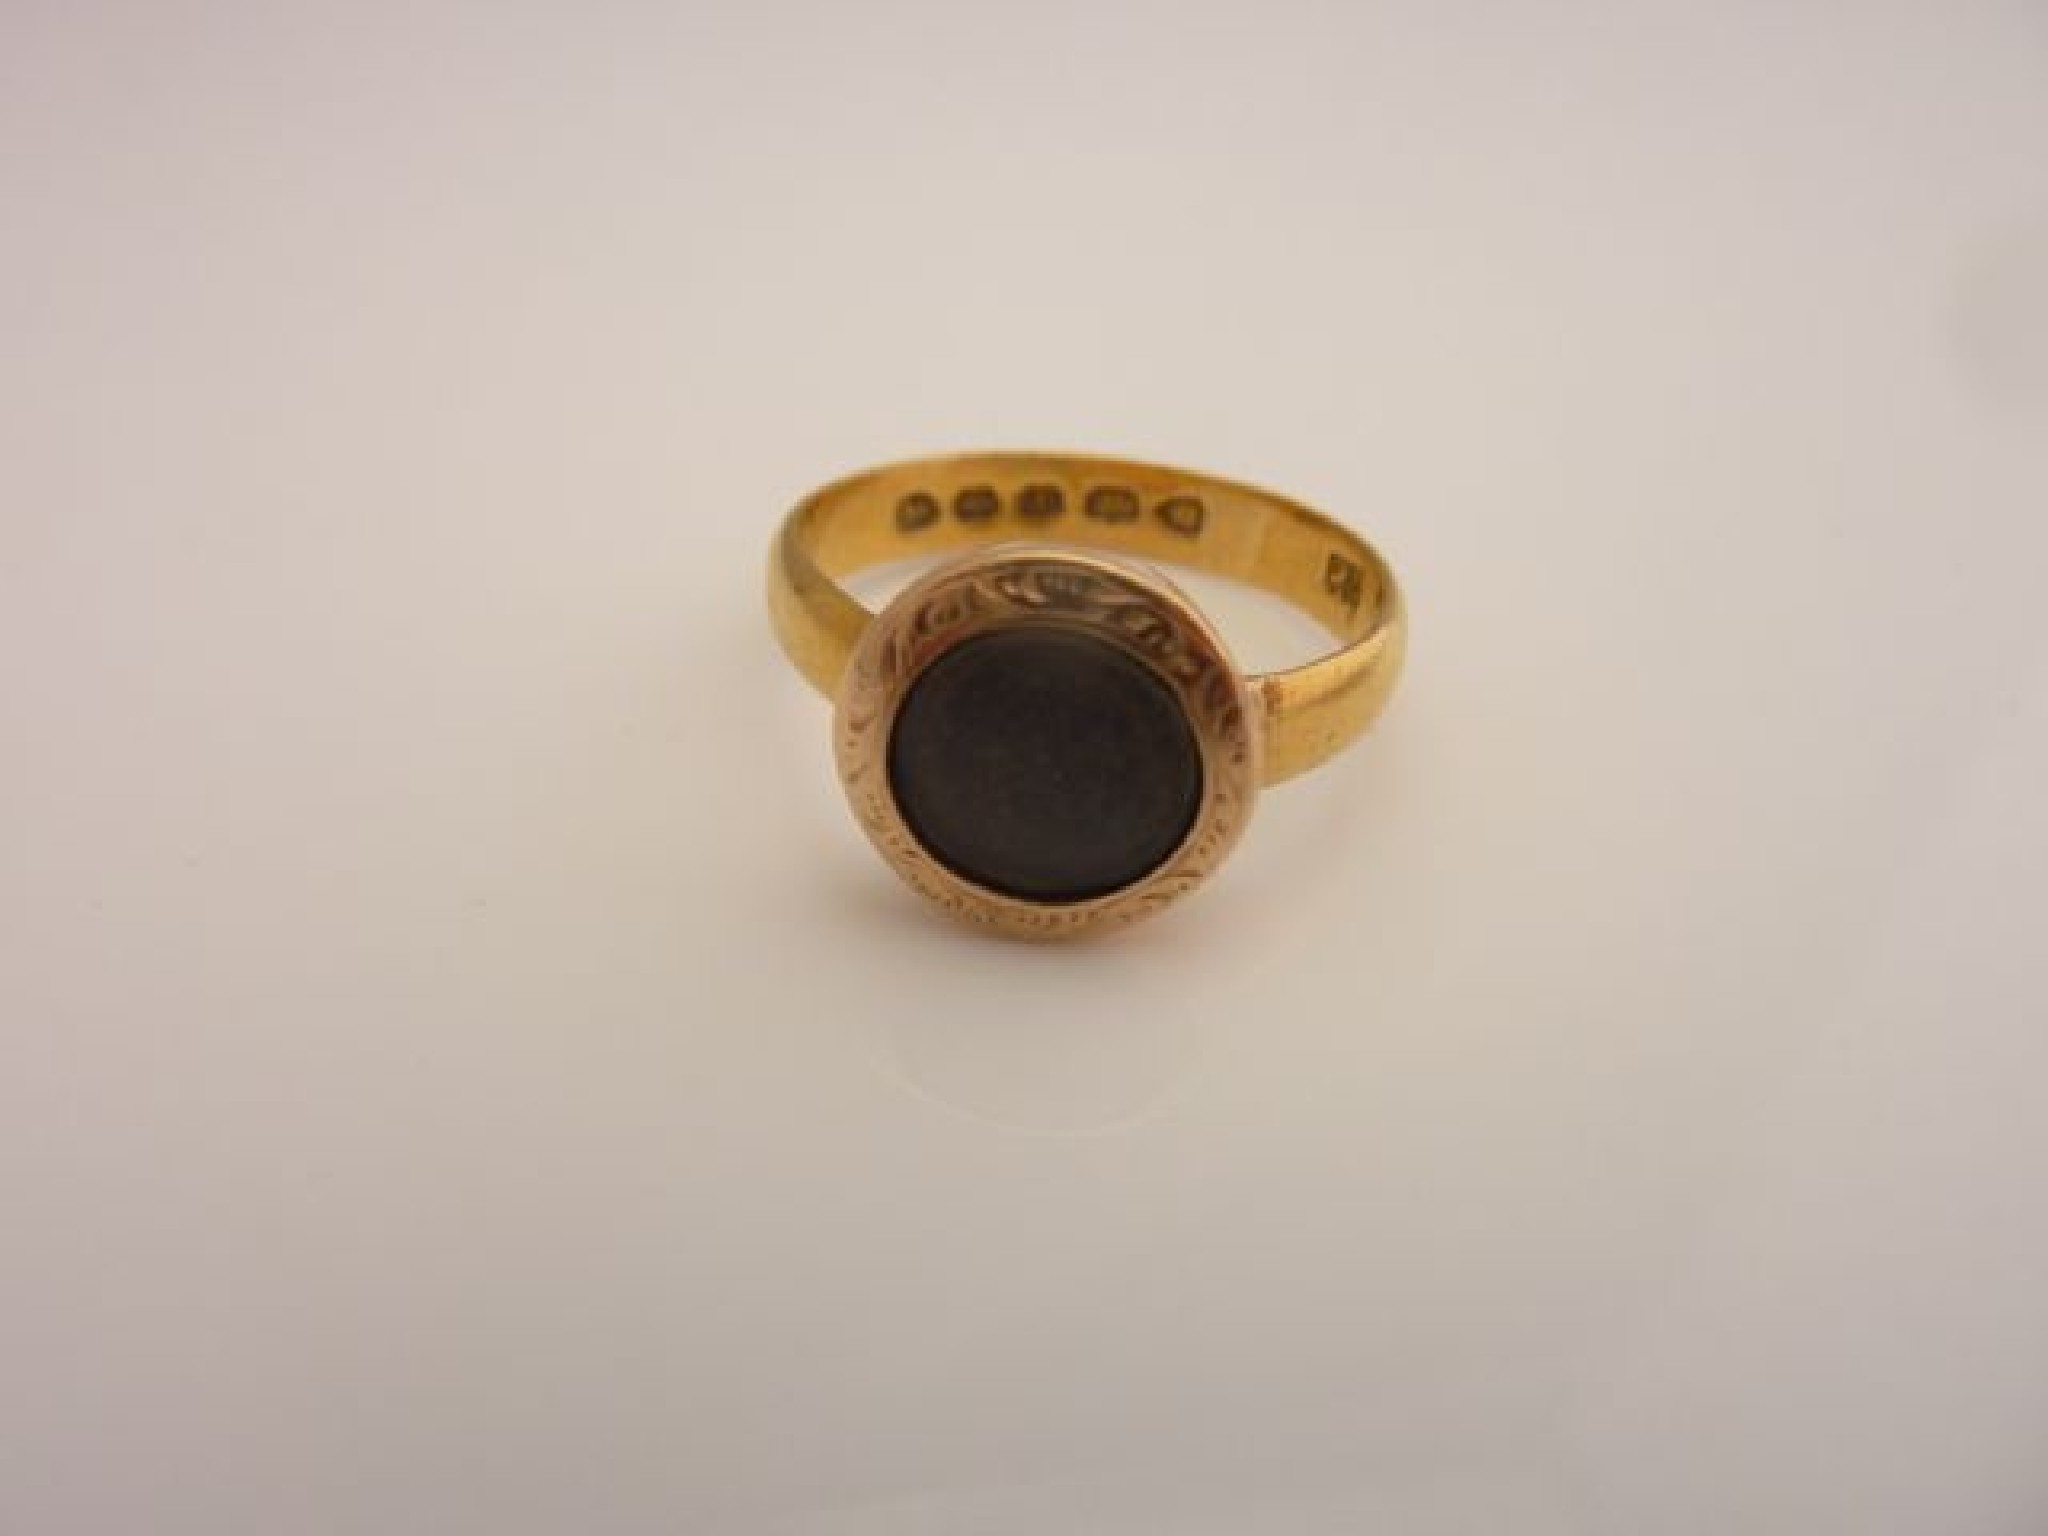 A Victorian mourning ring, the central compartment